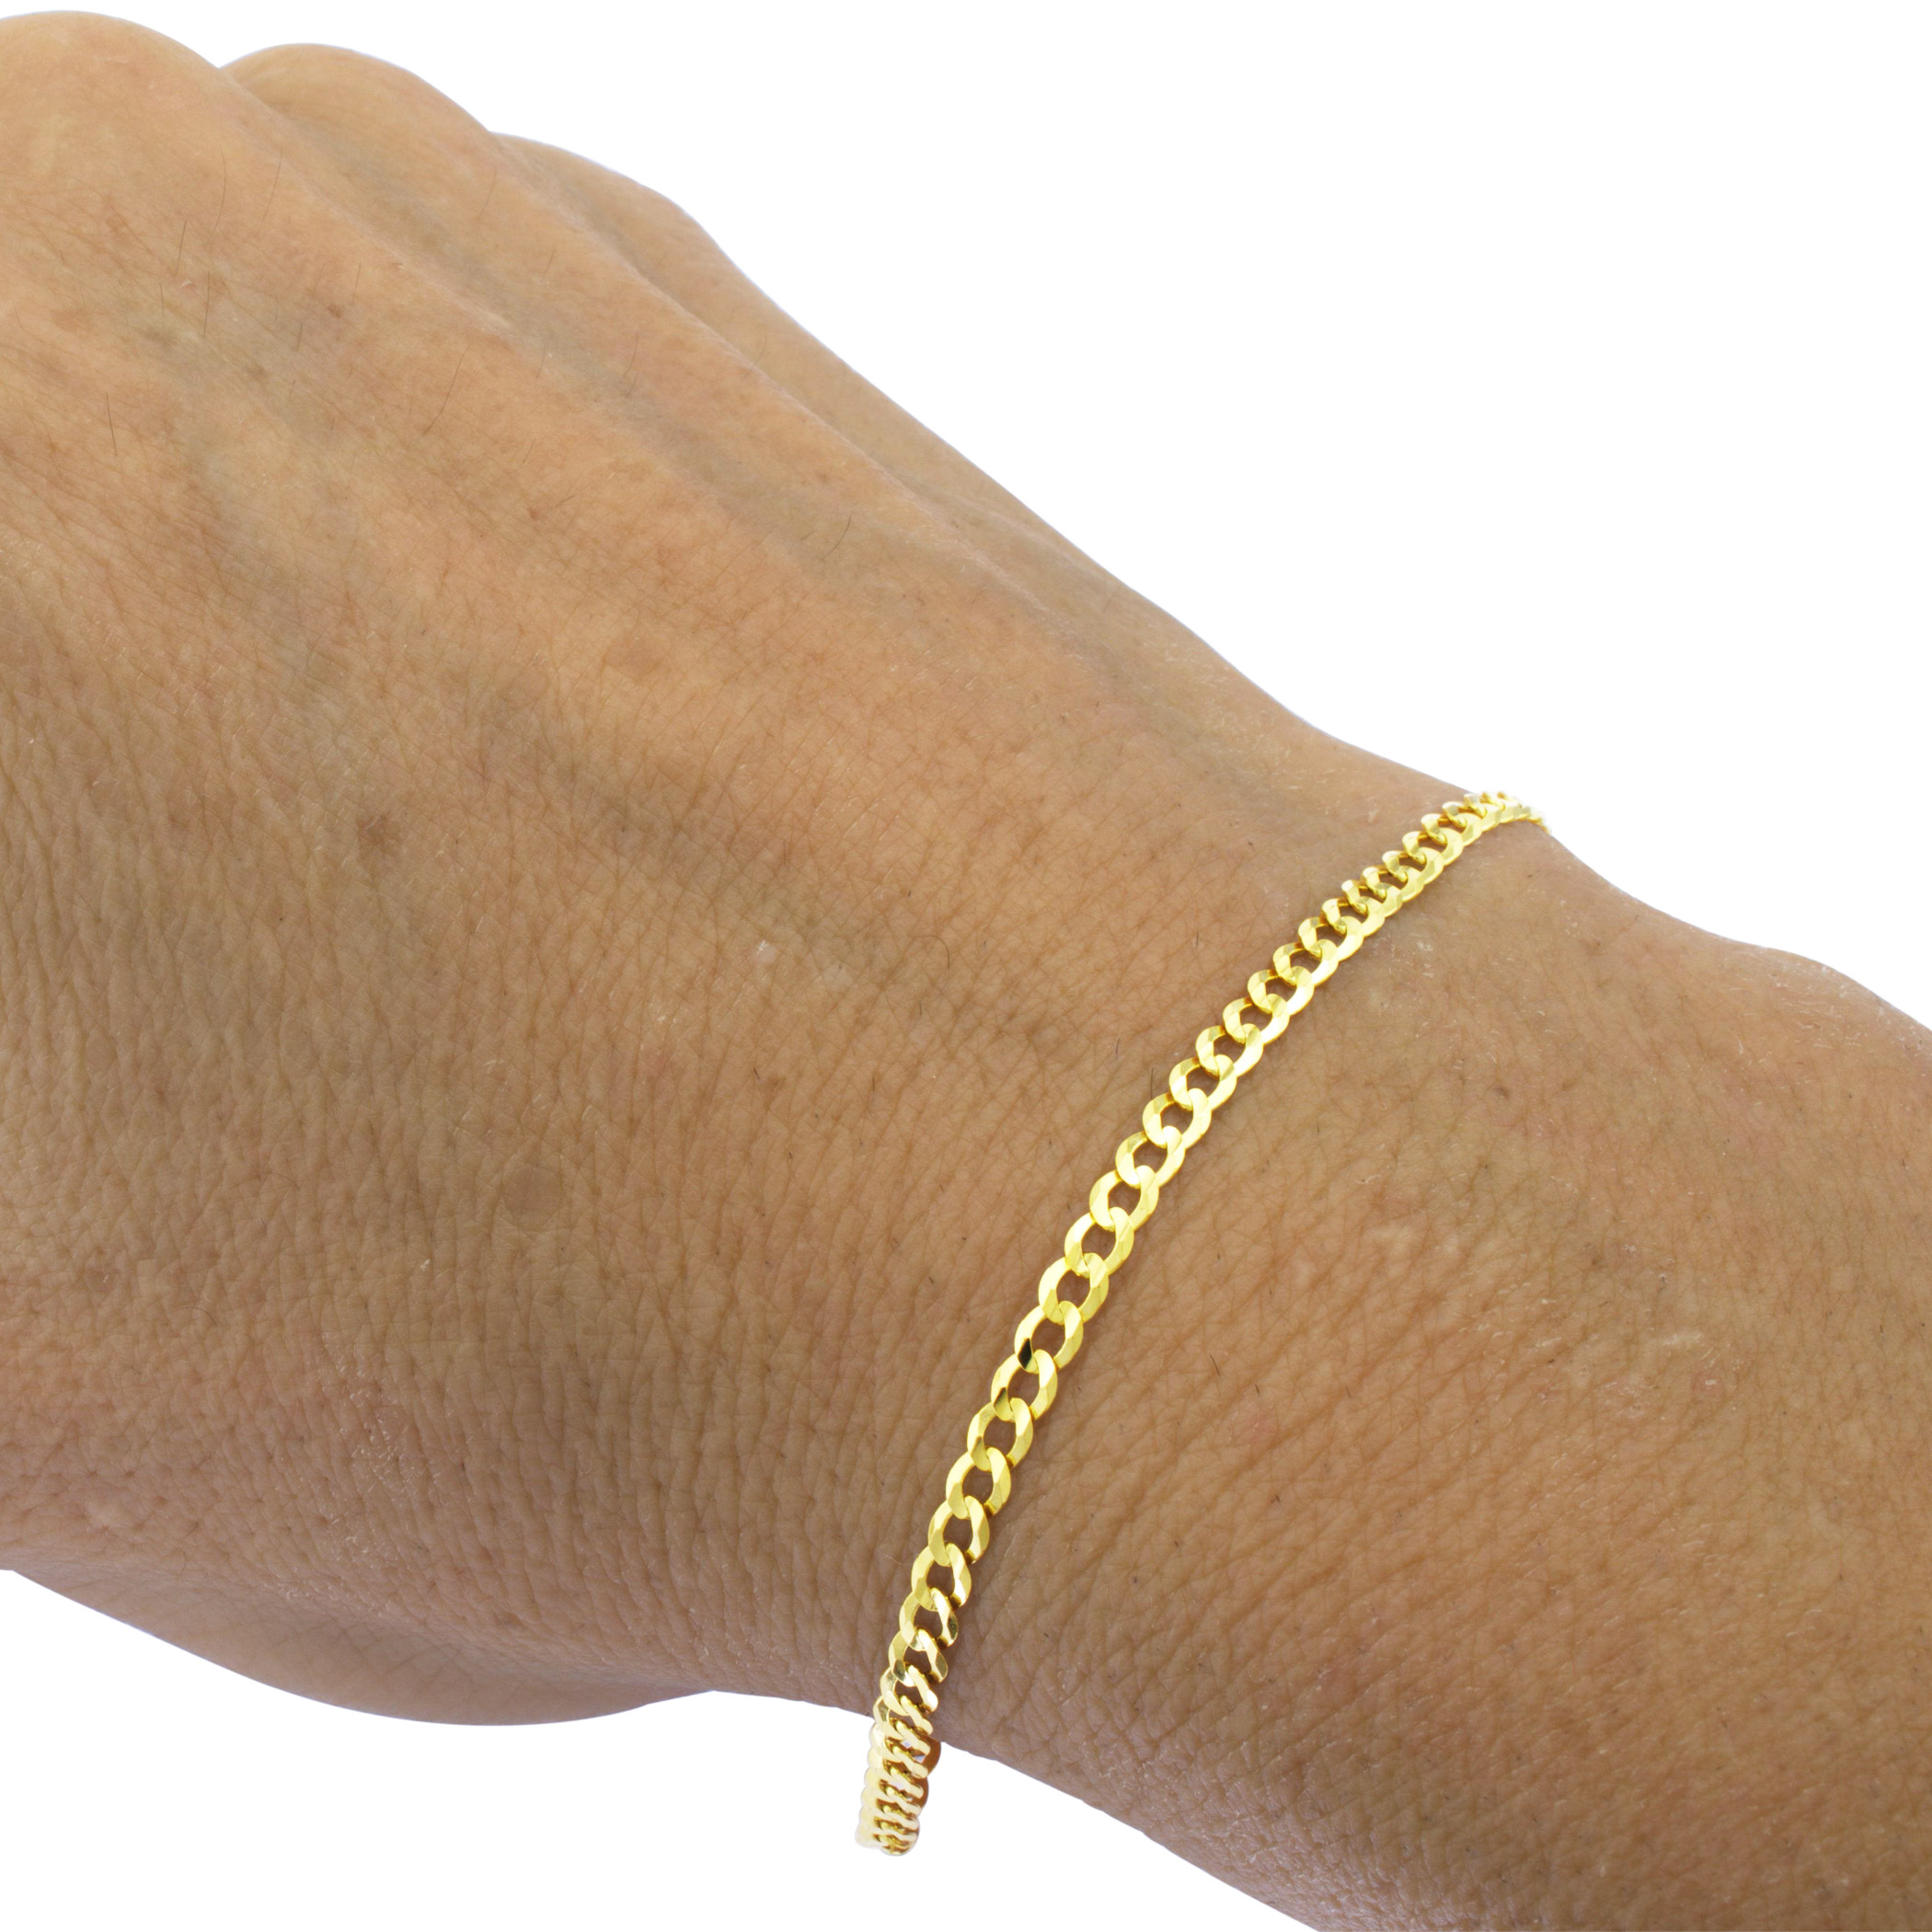 Real-14k-Yellow-Gold-Women-Solid-2-5mm-Curb-Cuban-Chain-Bracelet-or-Anklet-7-034-9-034 thumbnail 14